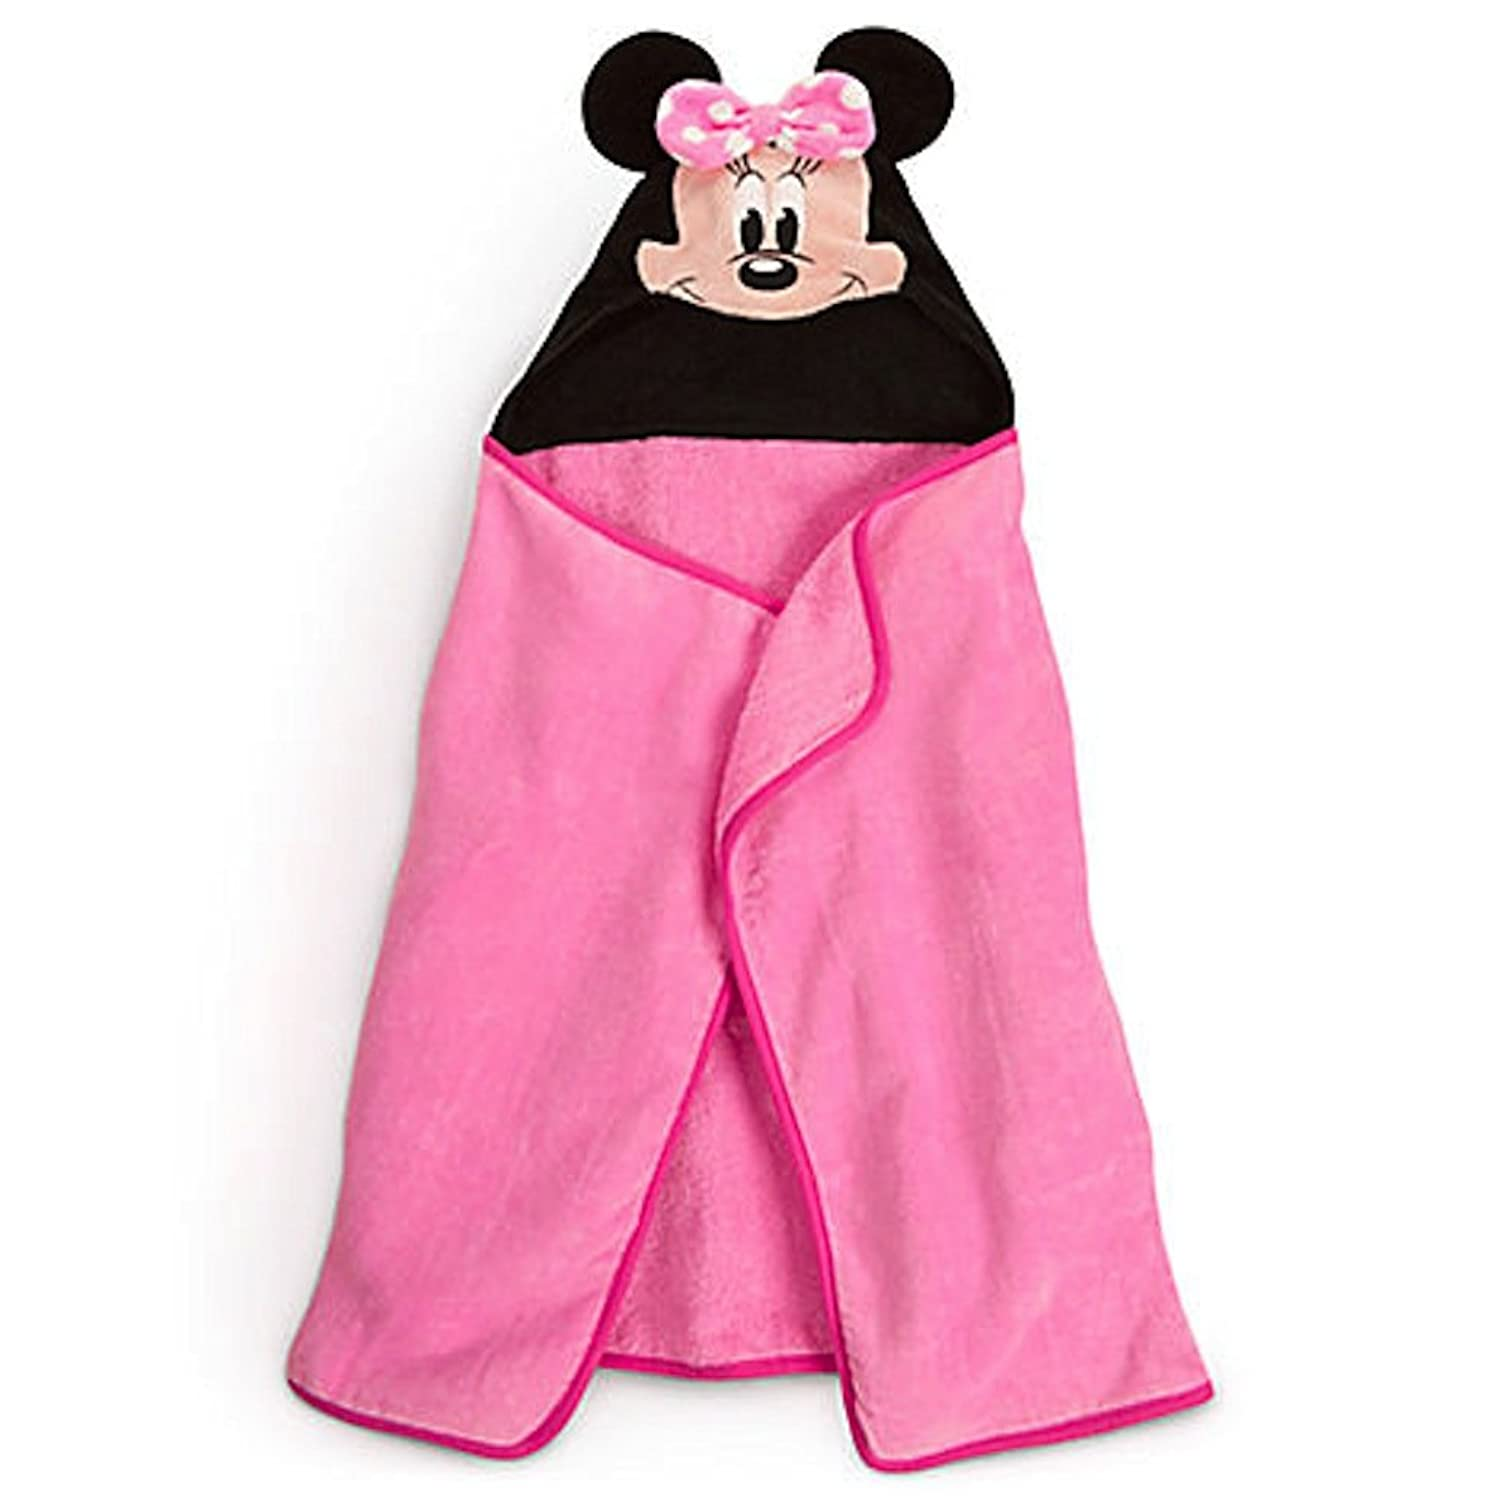 Amazon Disney Minnie Mouse Pink Hooded Towel for Baby Toddler